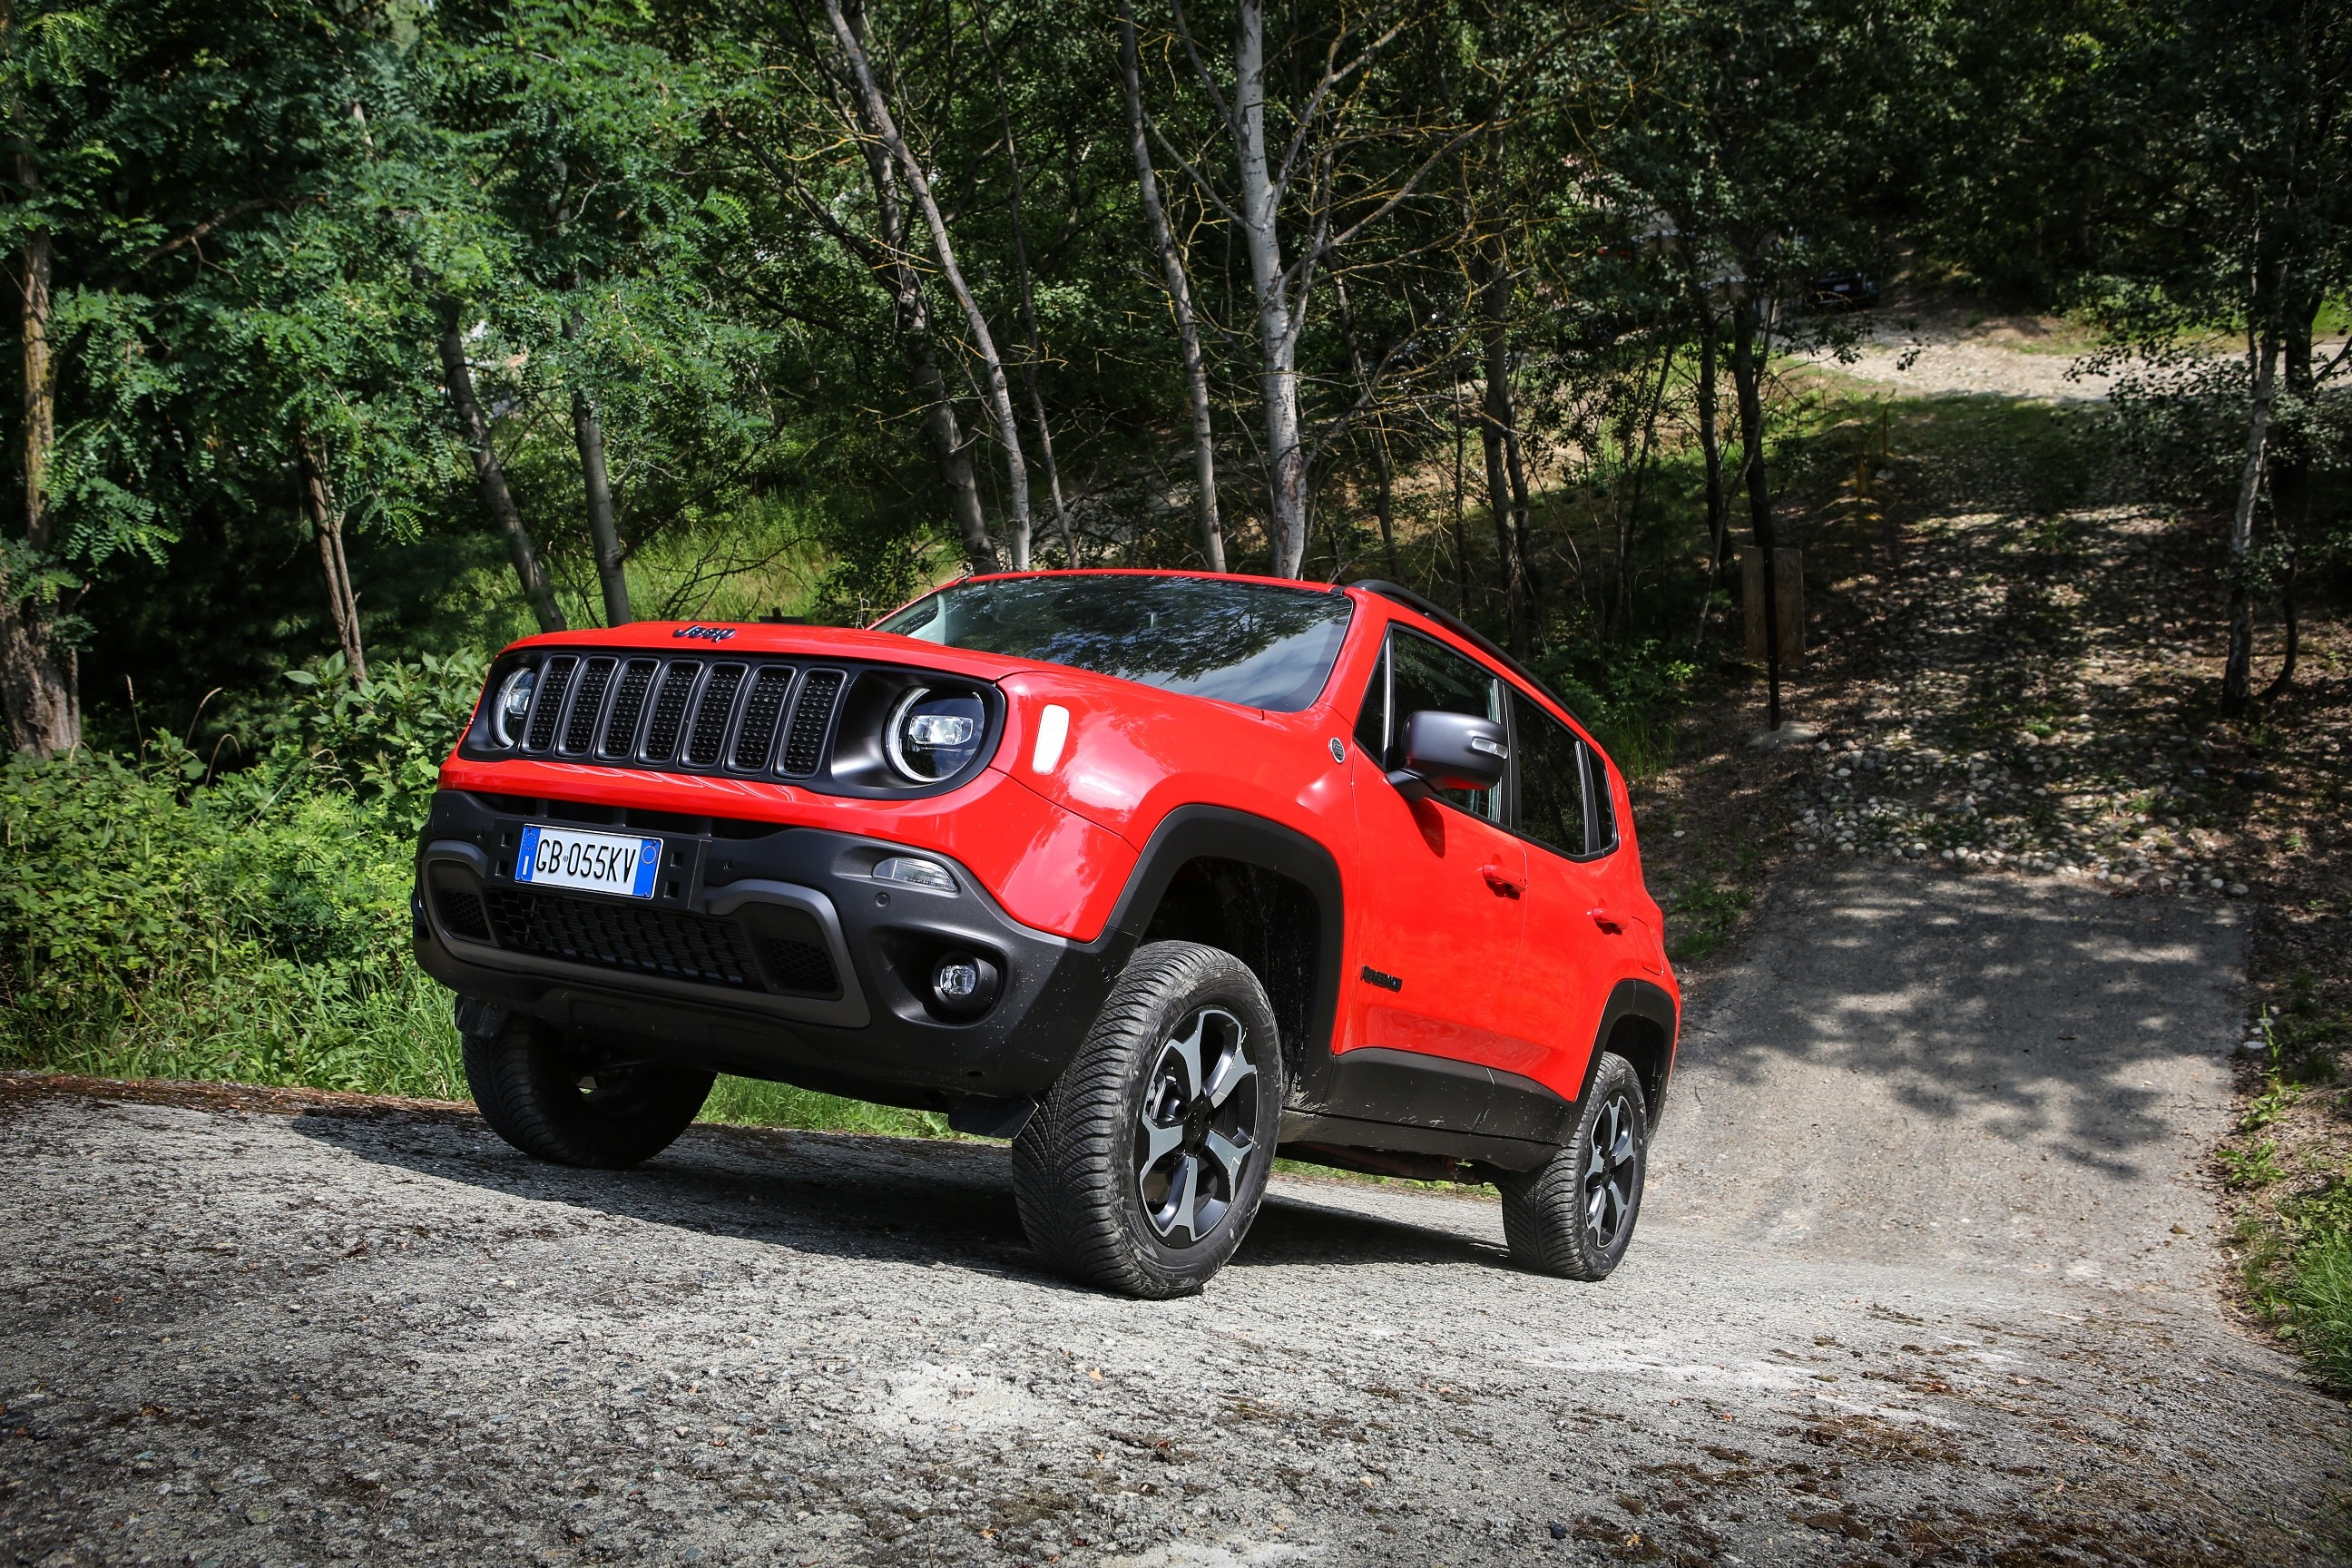 2021 jeep renegade 4xe plugin hybrid price announced in